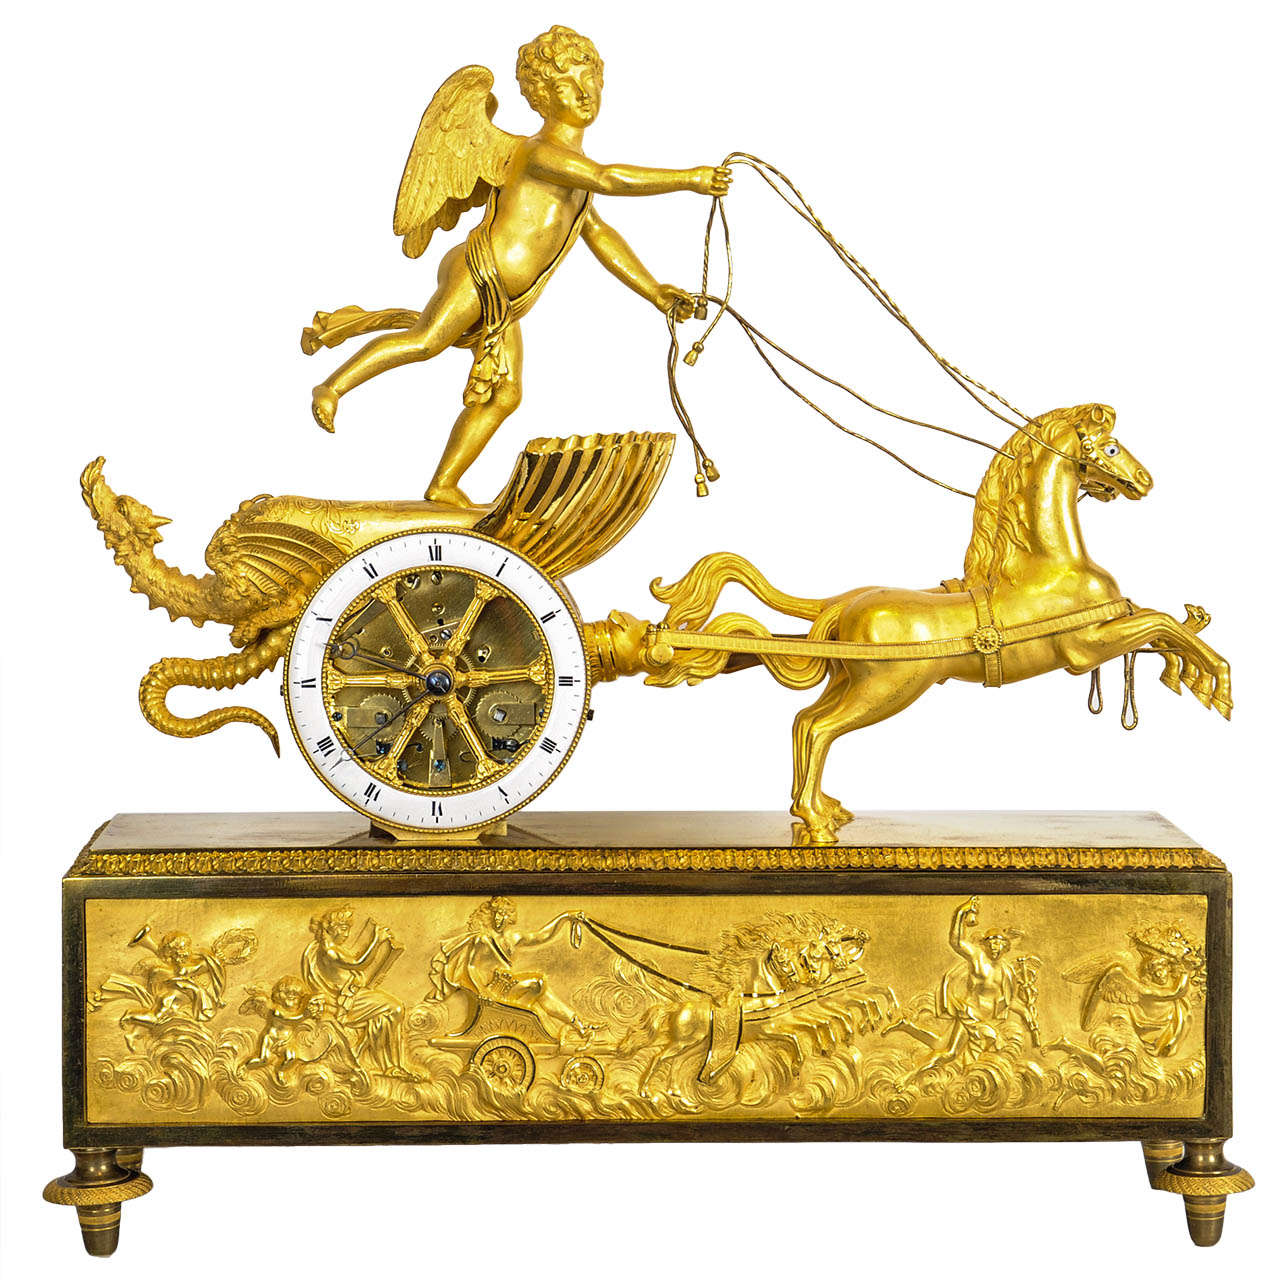 A charming French Empire ormolu chariot clock, circa 1810